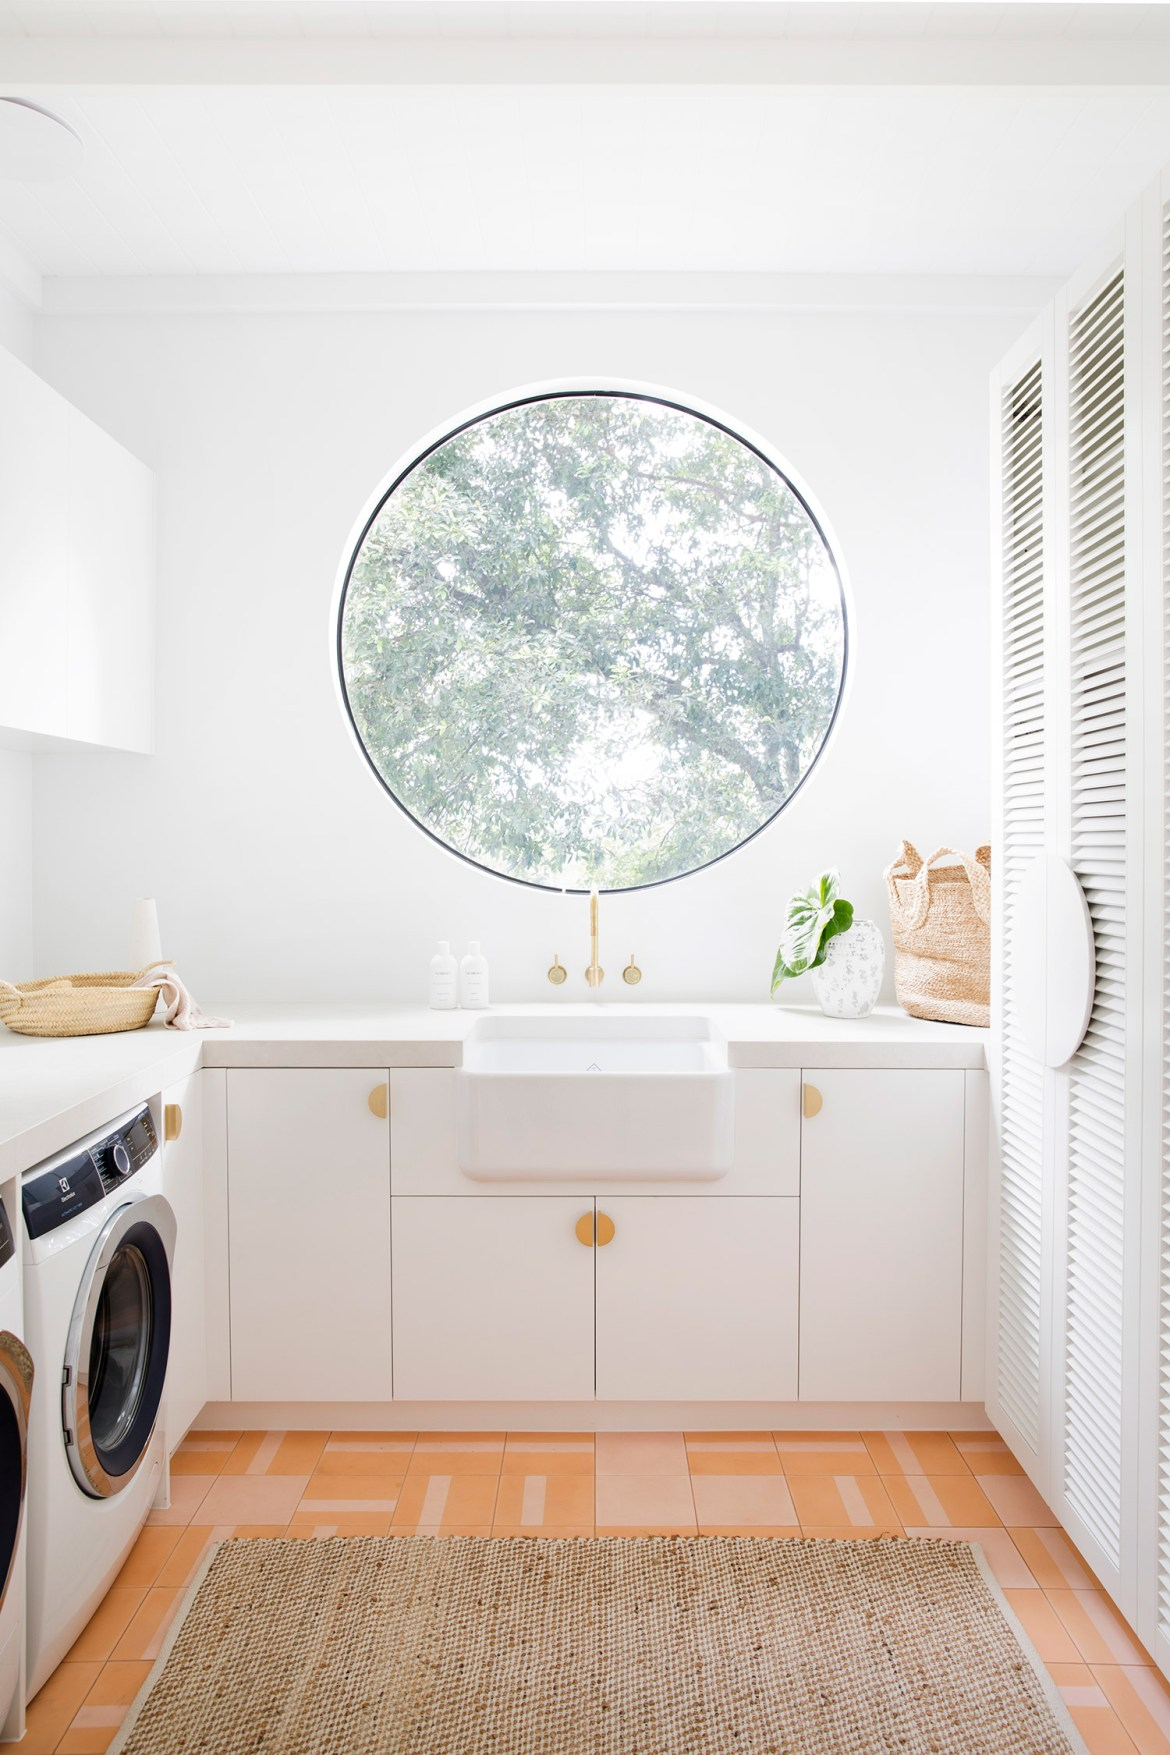 Shaws Lancaster 24 fireclay butler sink available through Reece stores Australia. Imported and distributed by Luxe by Design, Brisbane. Laundry by 3 Birds Renovations.